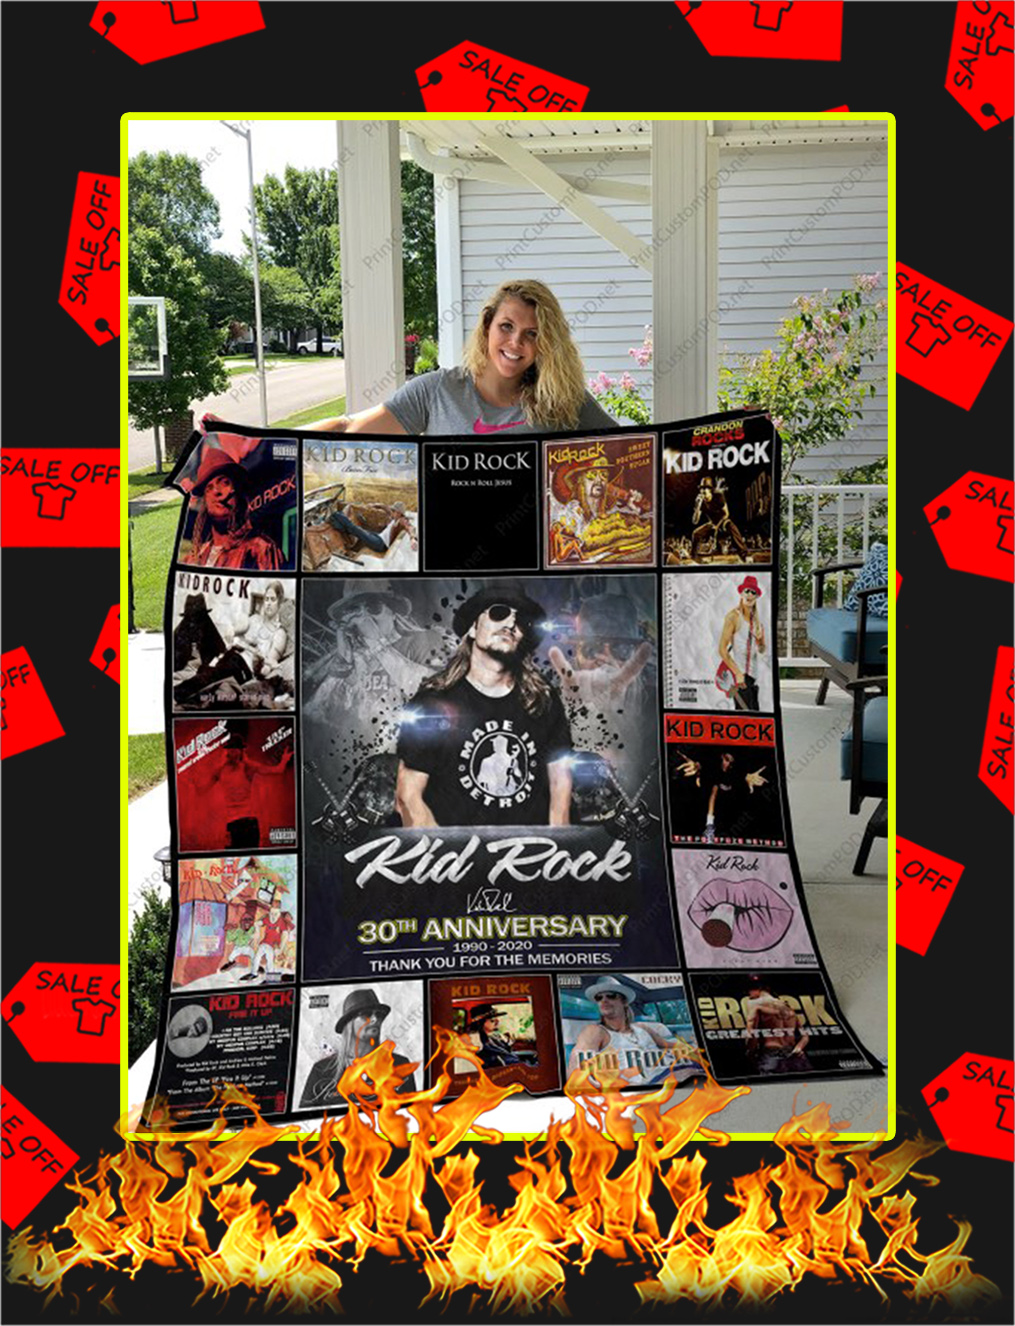 Kid Rock 30th Anniversary Thank You For The Memories Quilt Blanket - queen